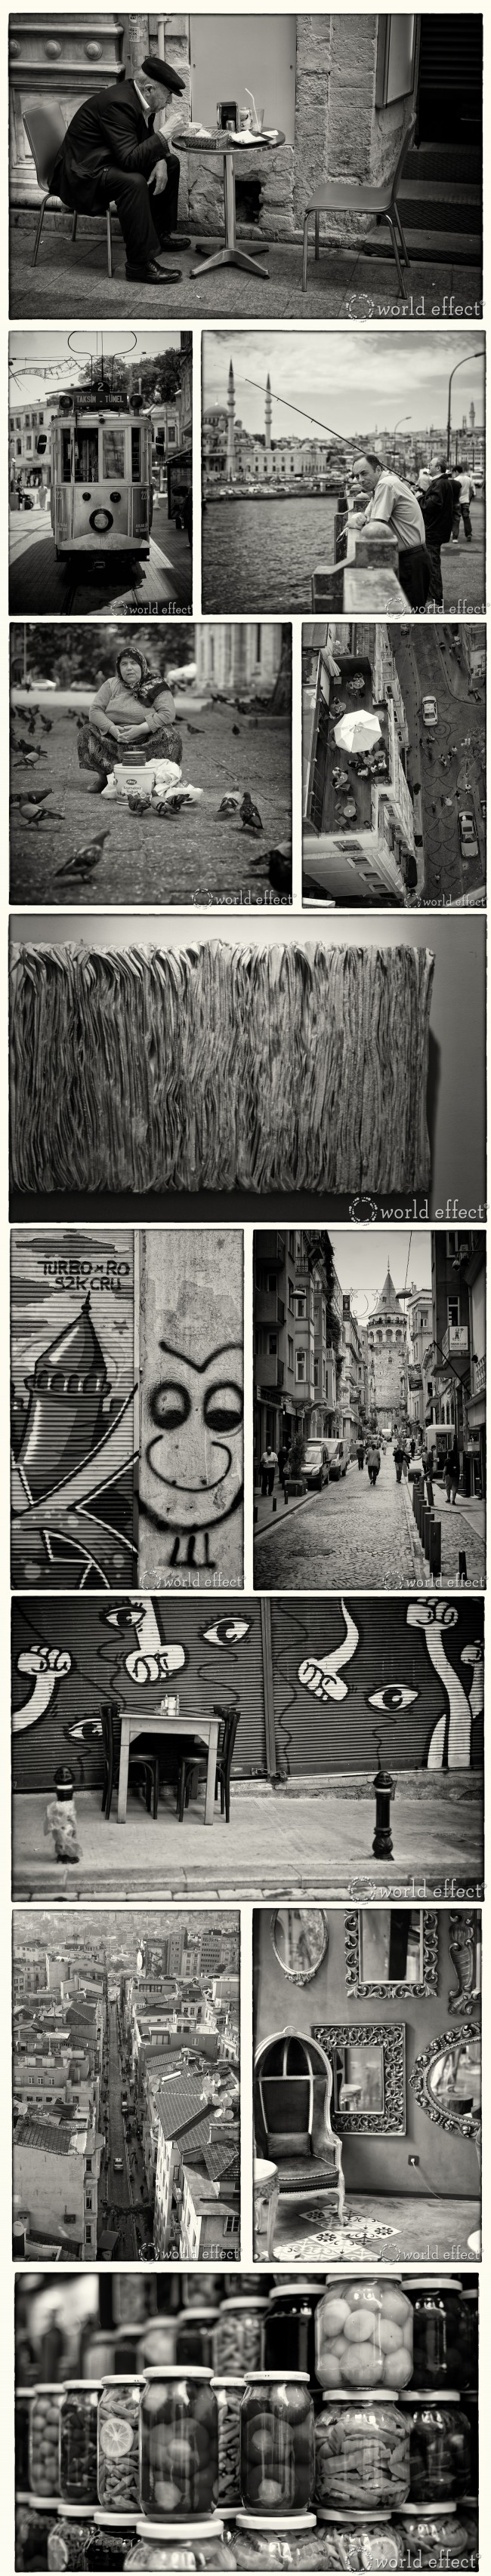 Istanbul in black and white